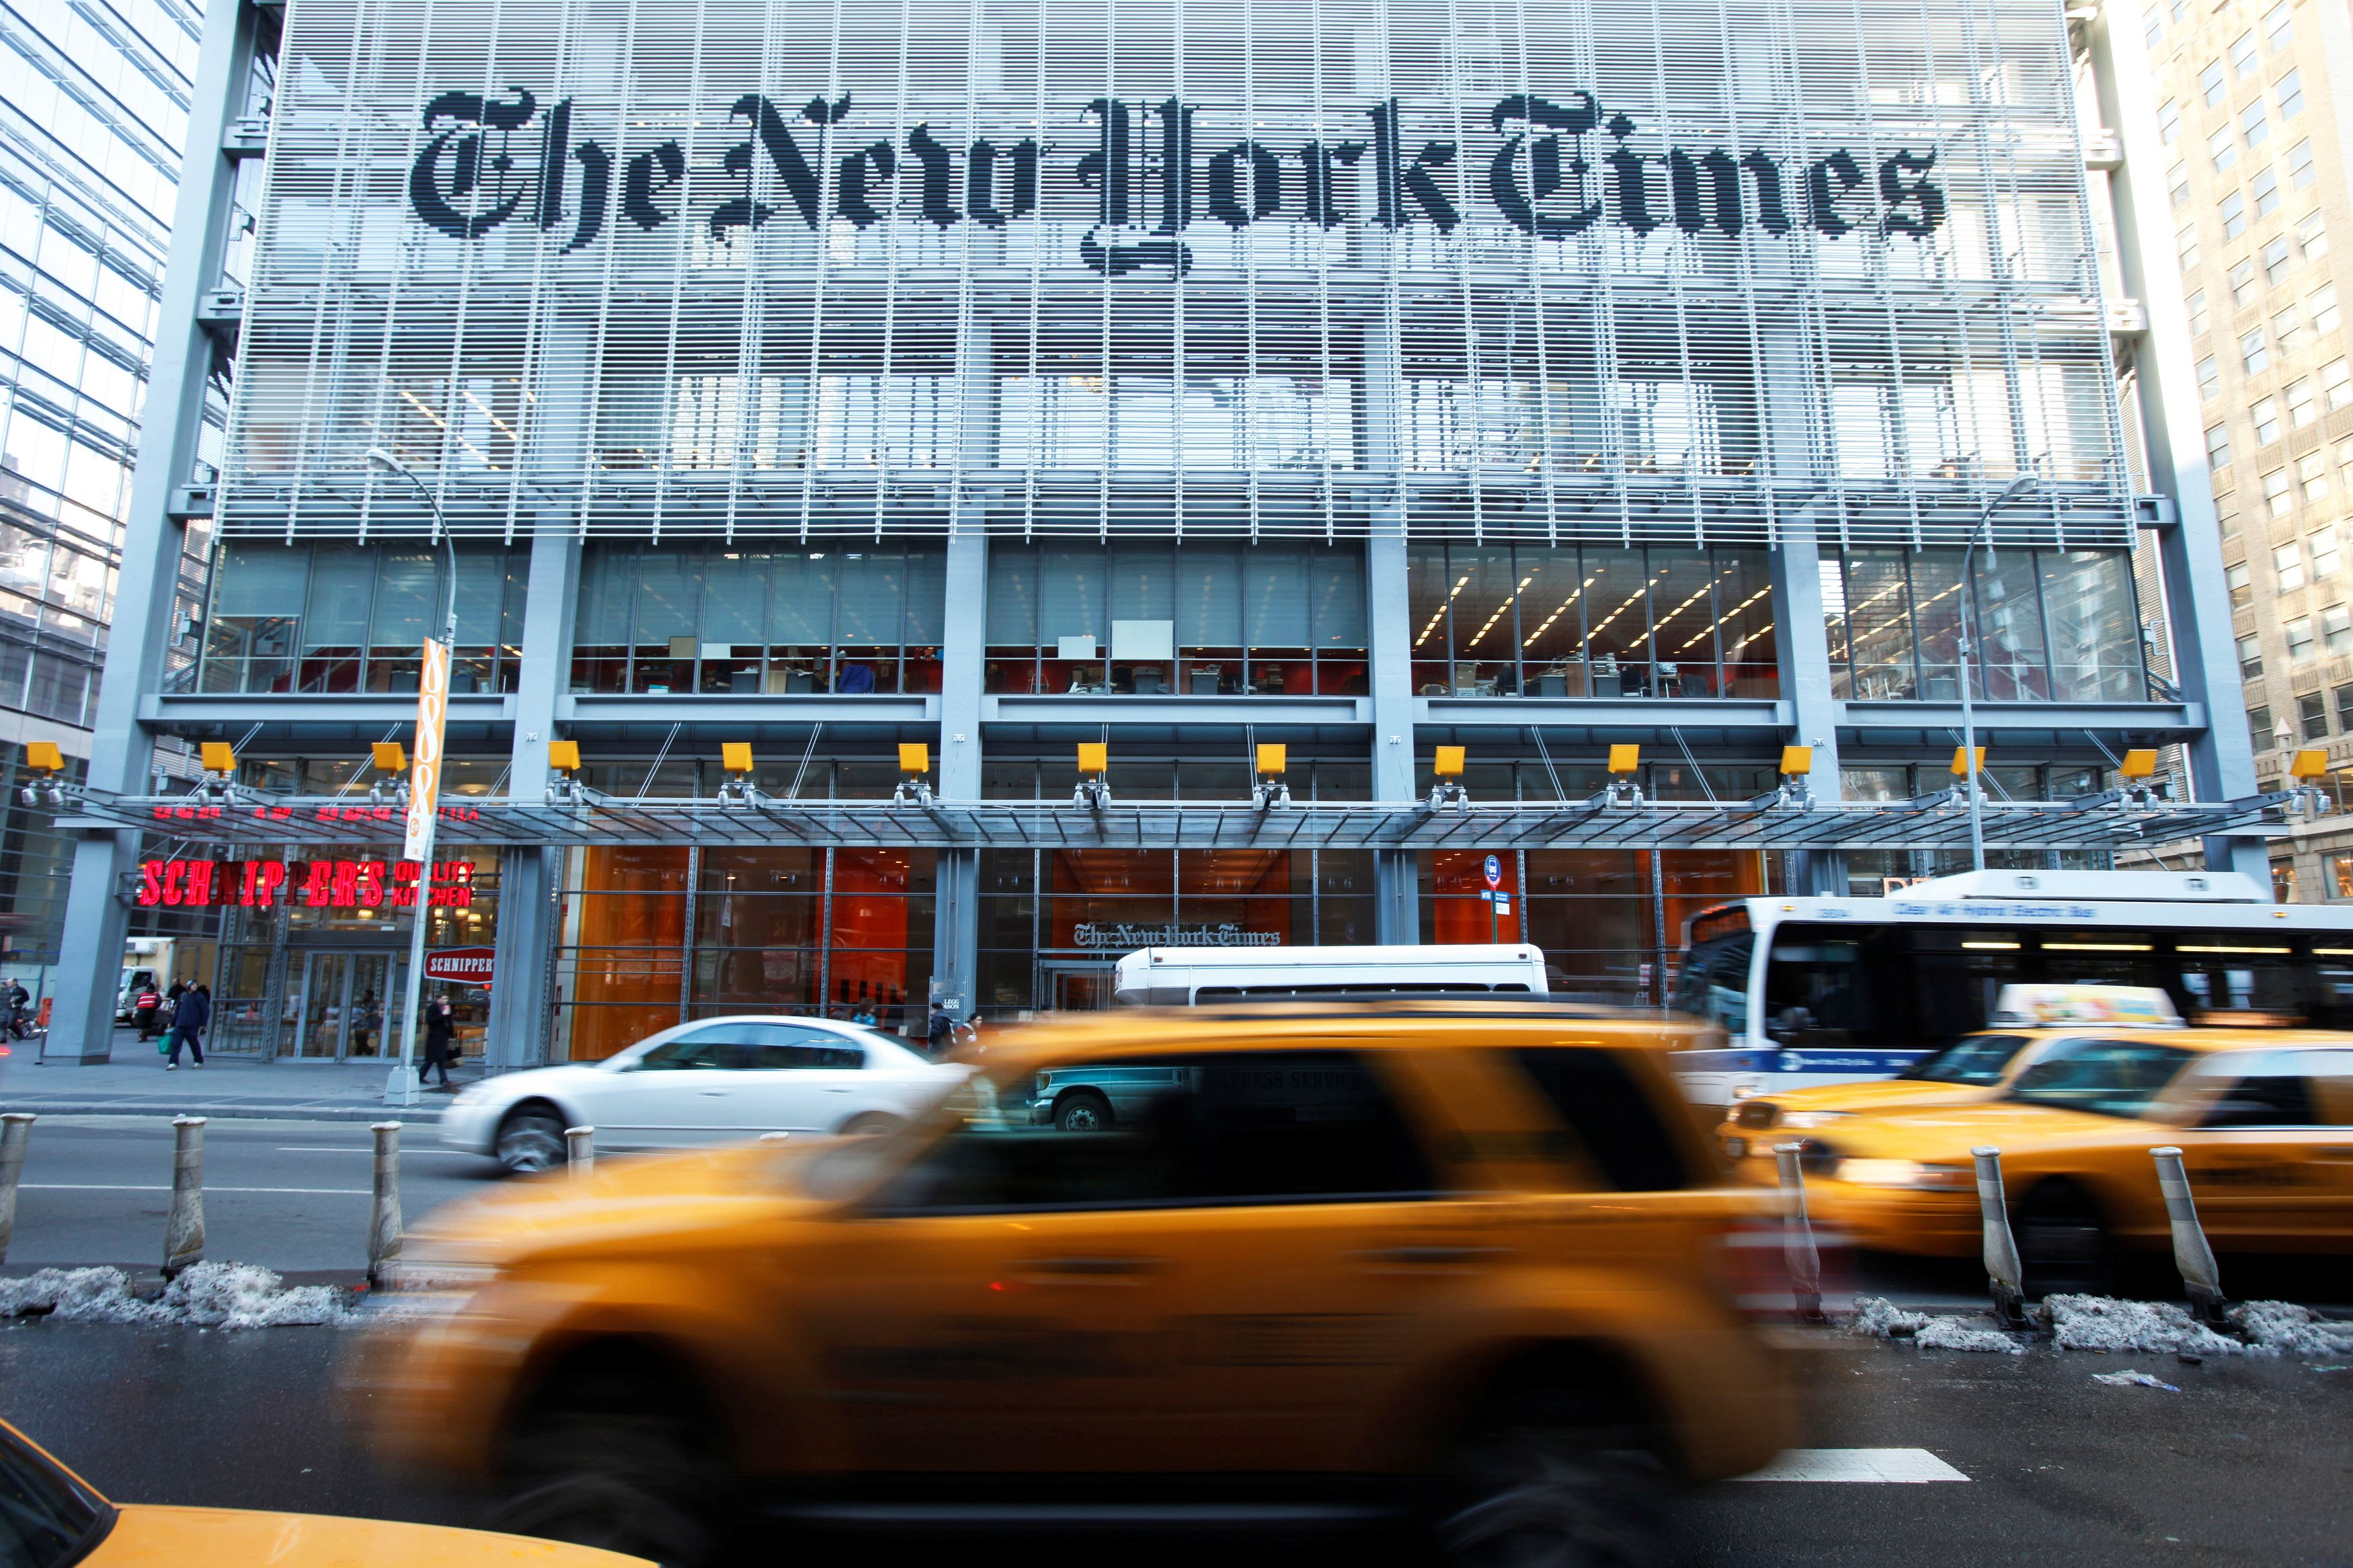 Vehicles drive past the New York Times headquarters in New York March 1, 2010. REUTERS/Lucas Jackson/File Photo